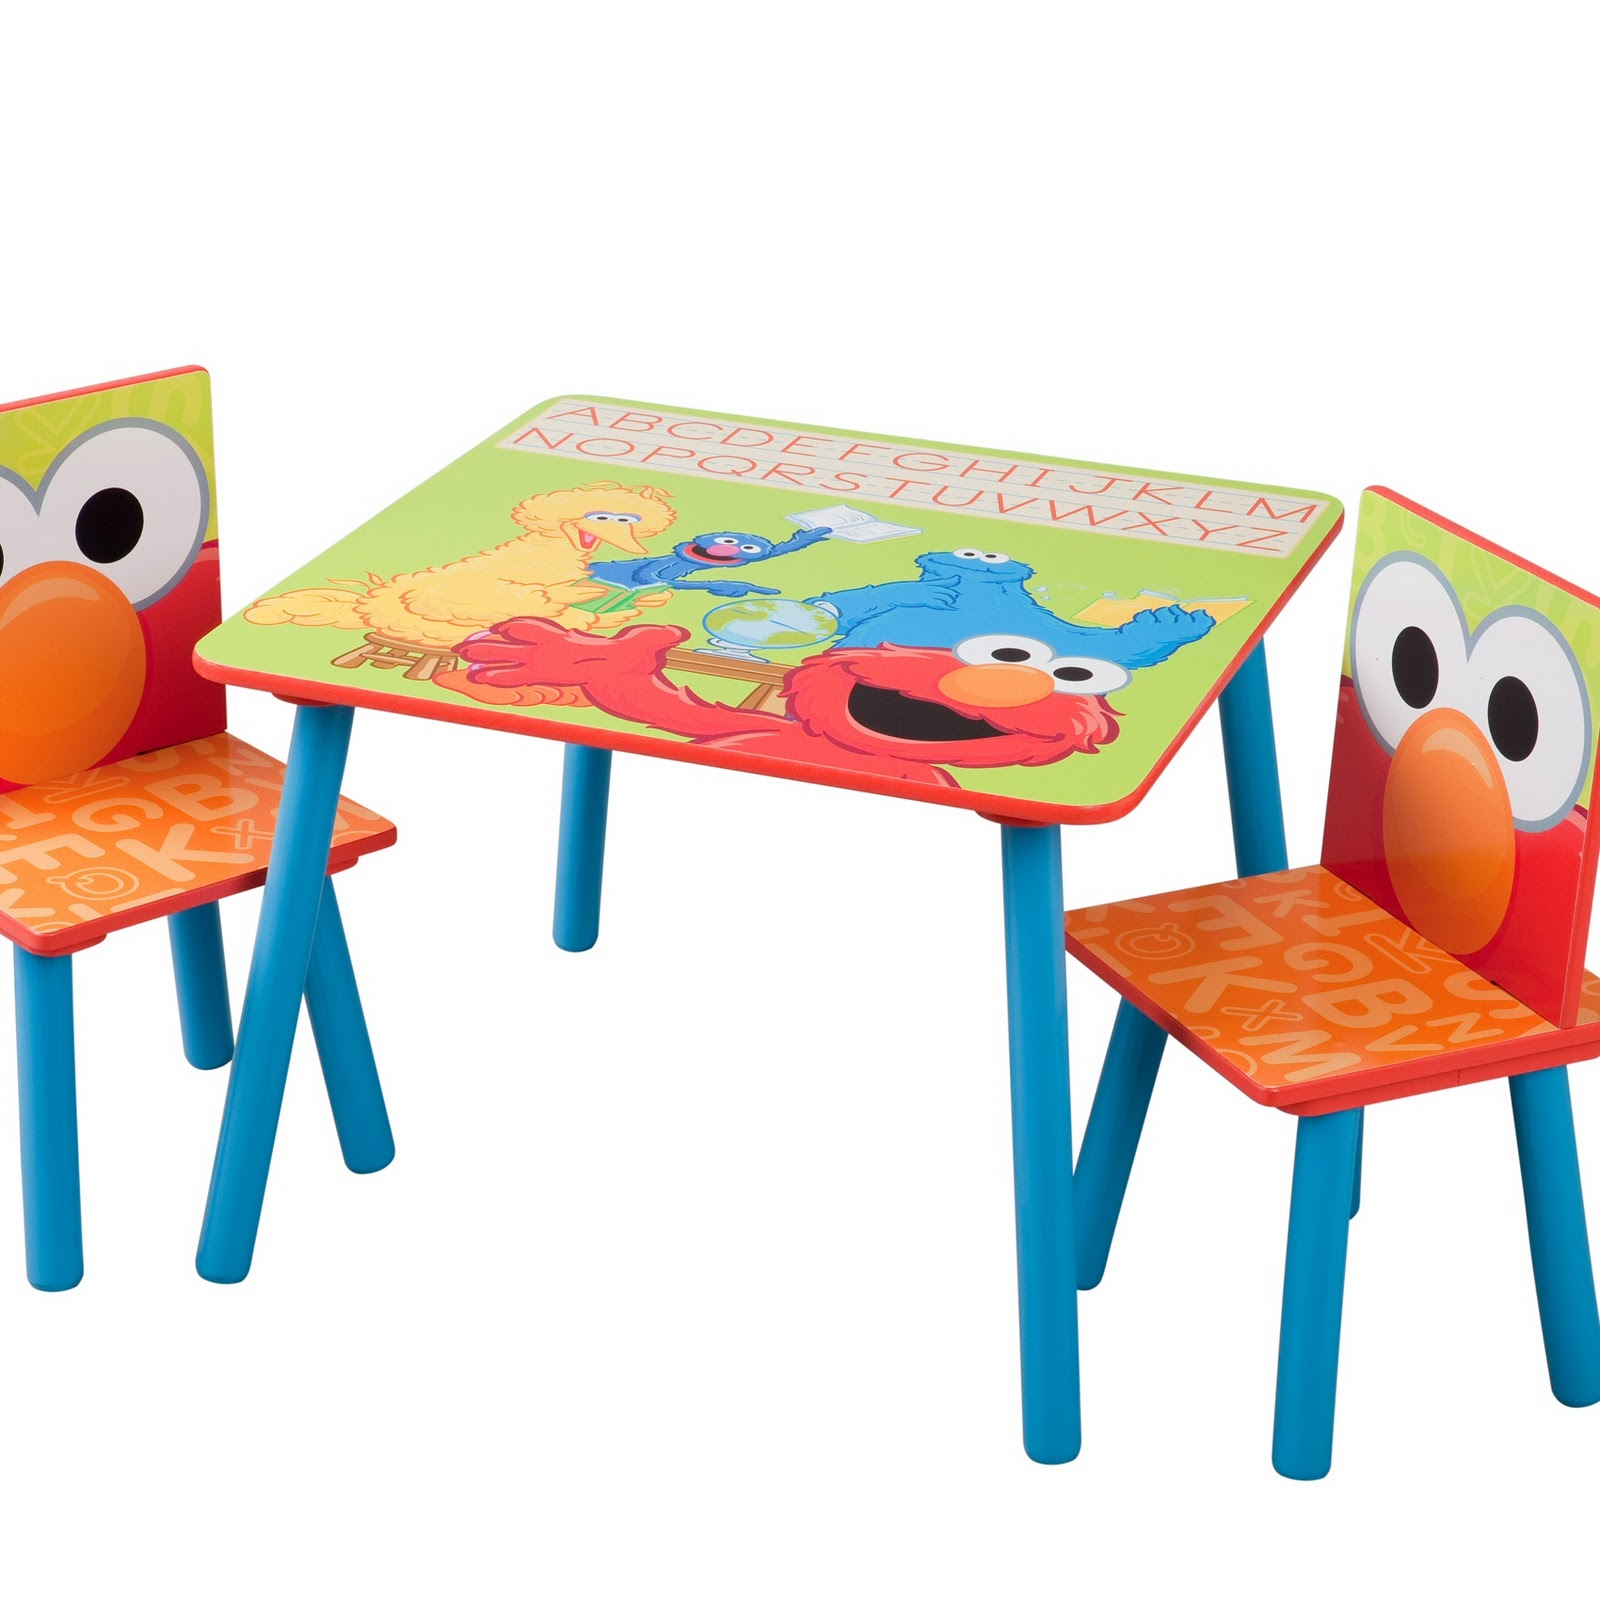 little tikes classic table and chairs turquoise leather chair ottoman my cny mommy holiday gift guide twitter party tomorrow